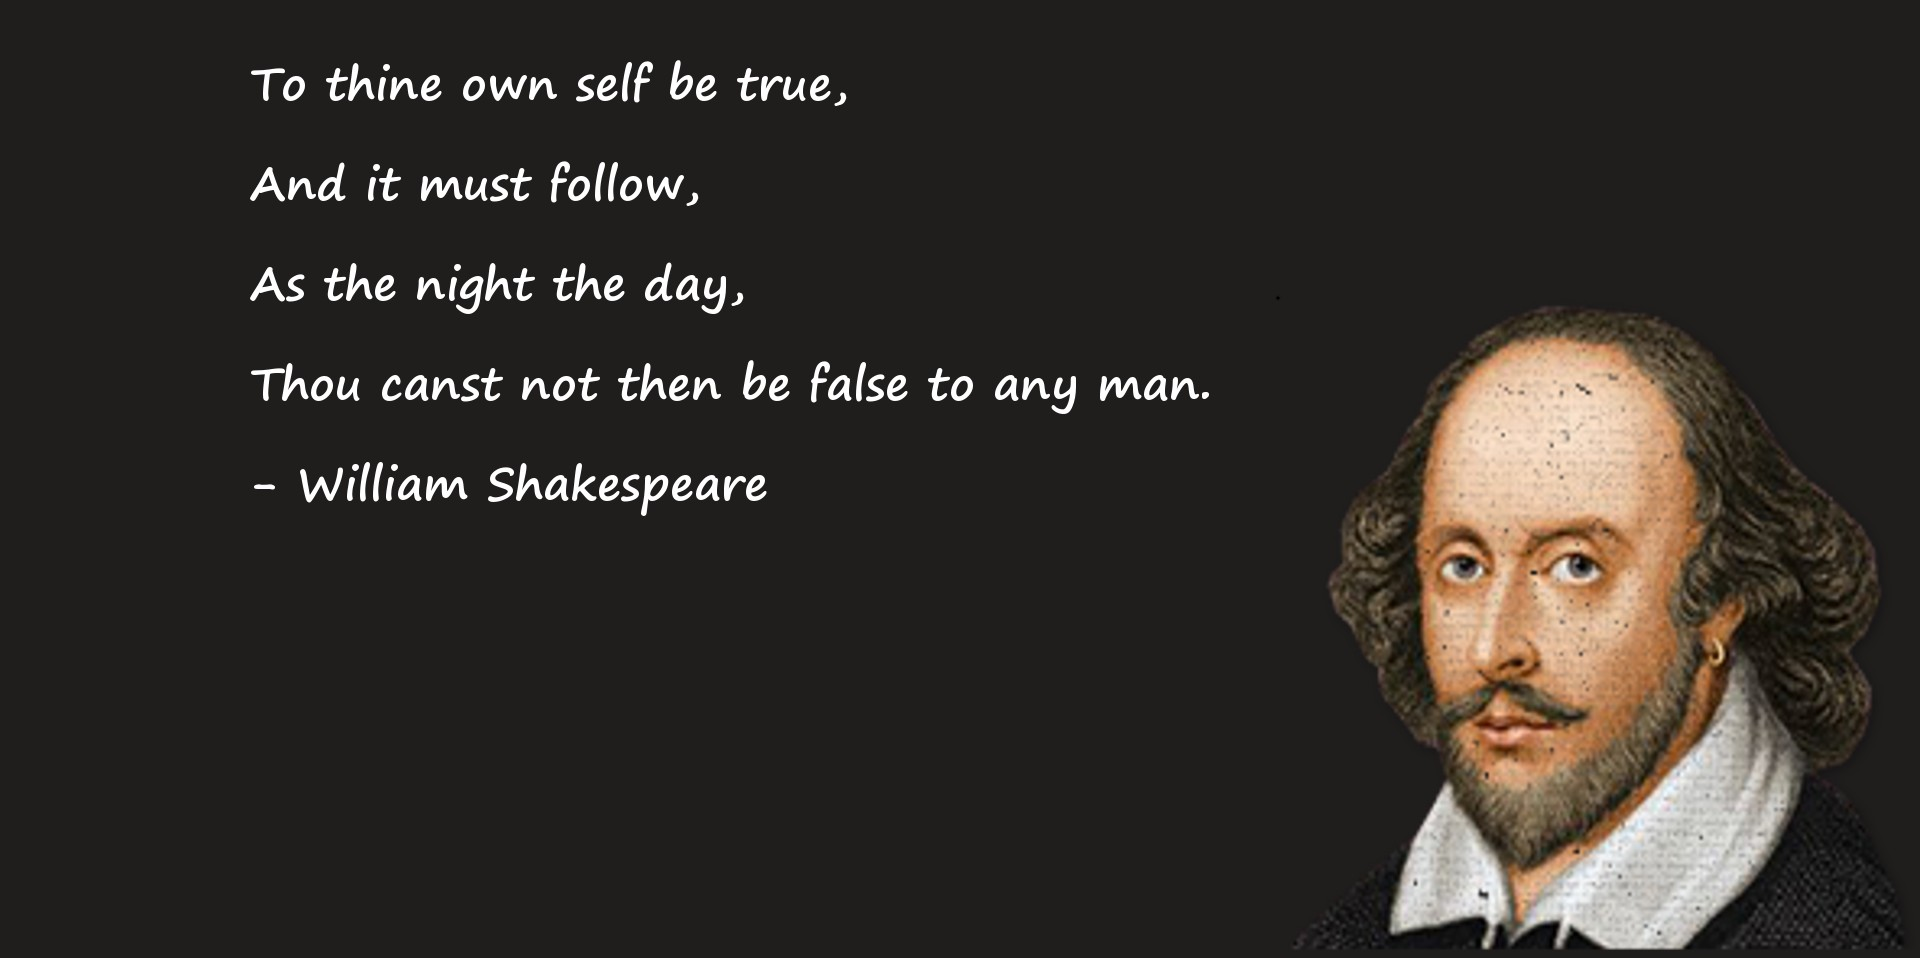 to thine own seif be true What did shakespeare mean by to thine own self be true shmoop explains in twenty-first century english.